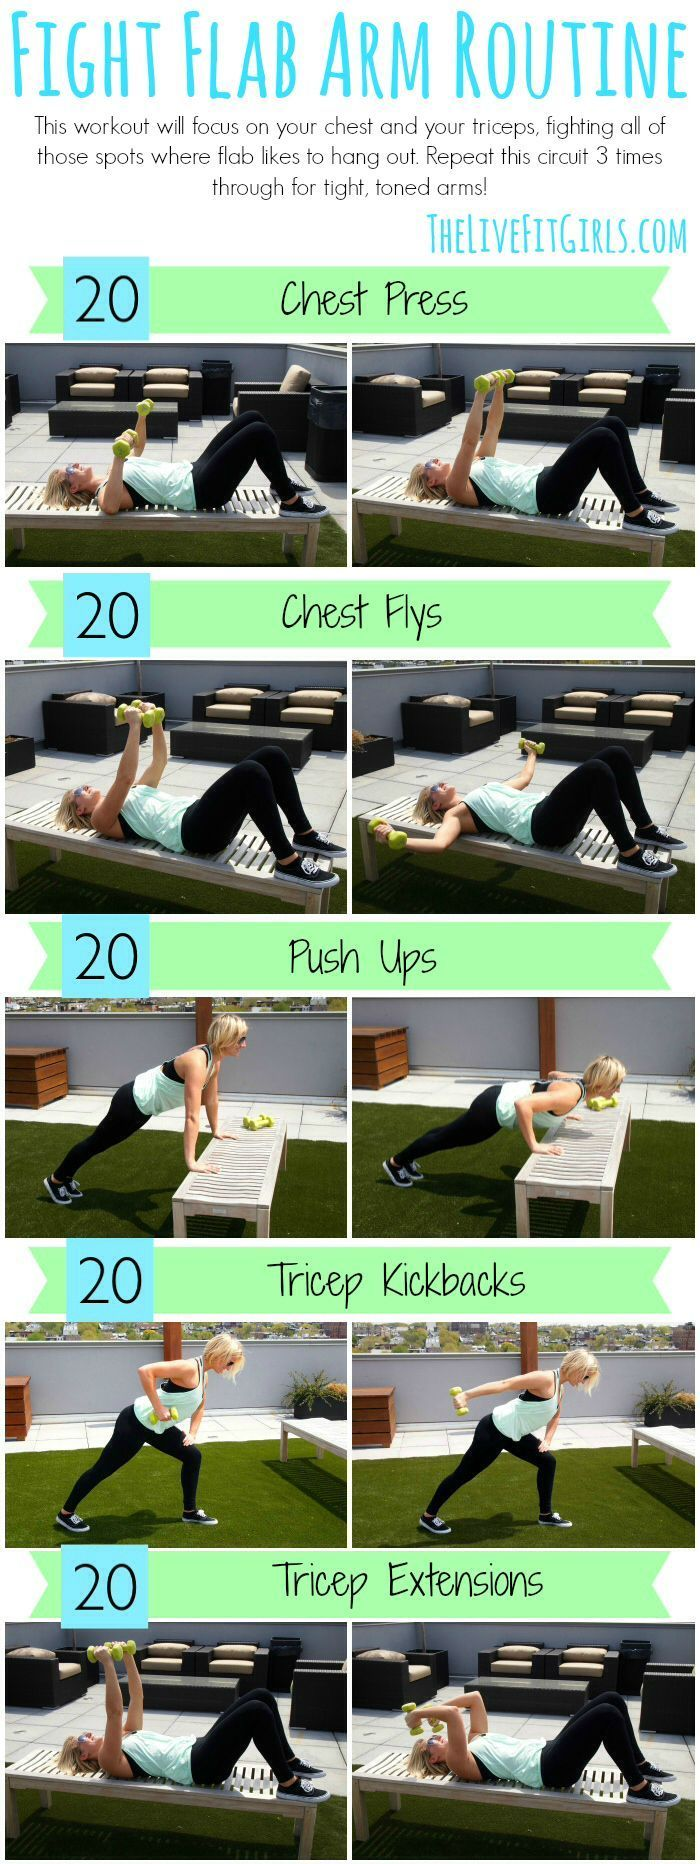 Fight Flab with this toning Arm Routine!  | Posted by: YourCustomWeightlossProgram.com